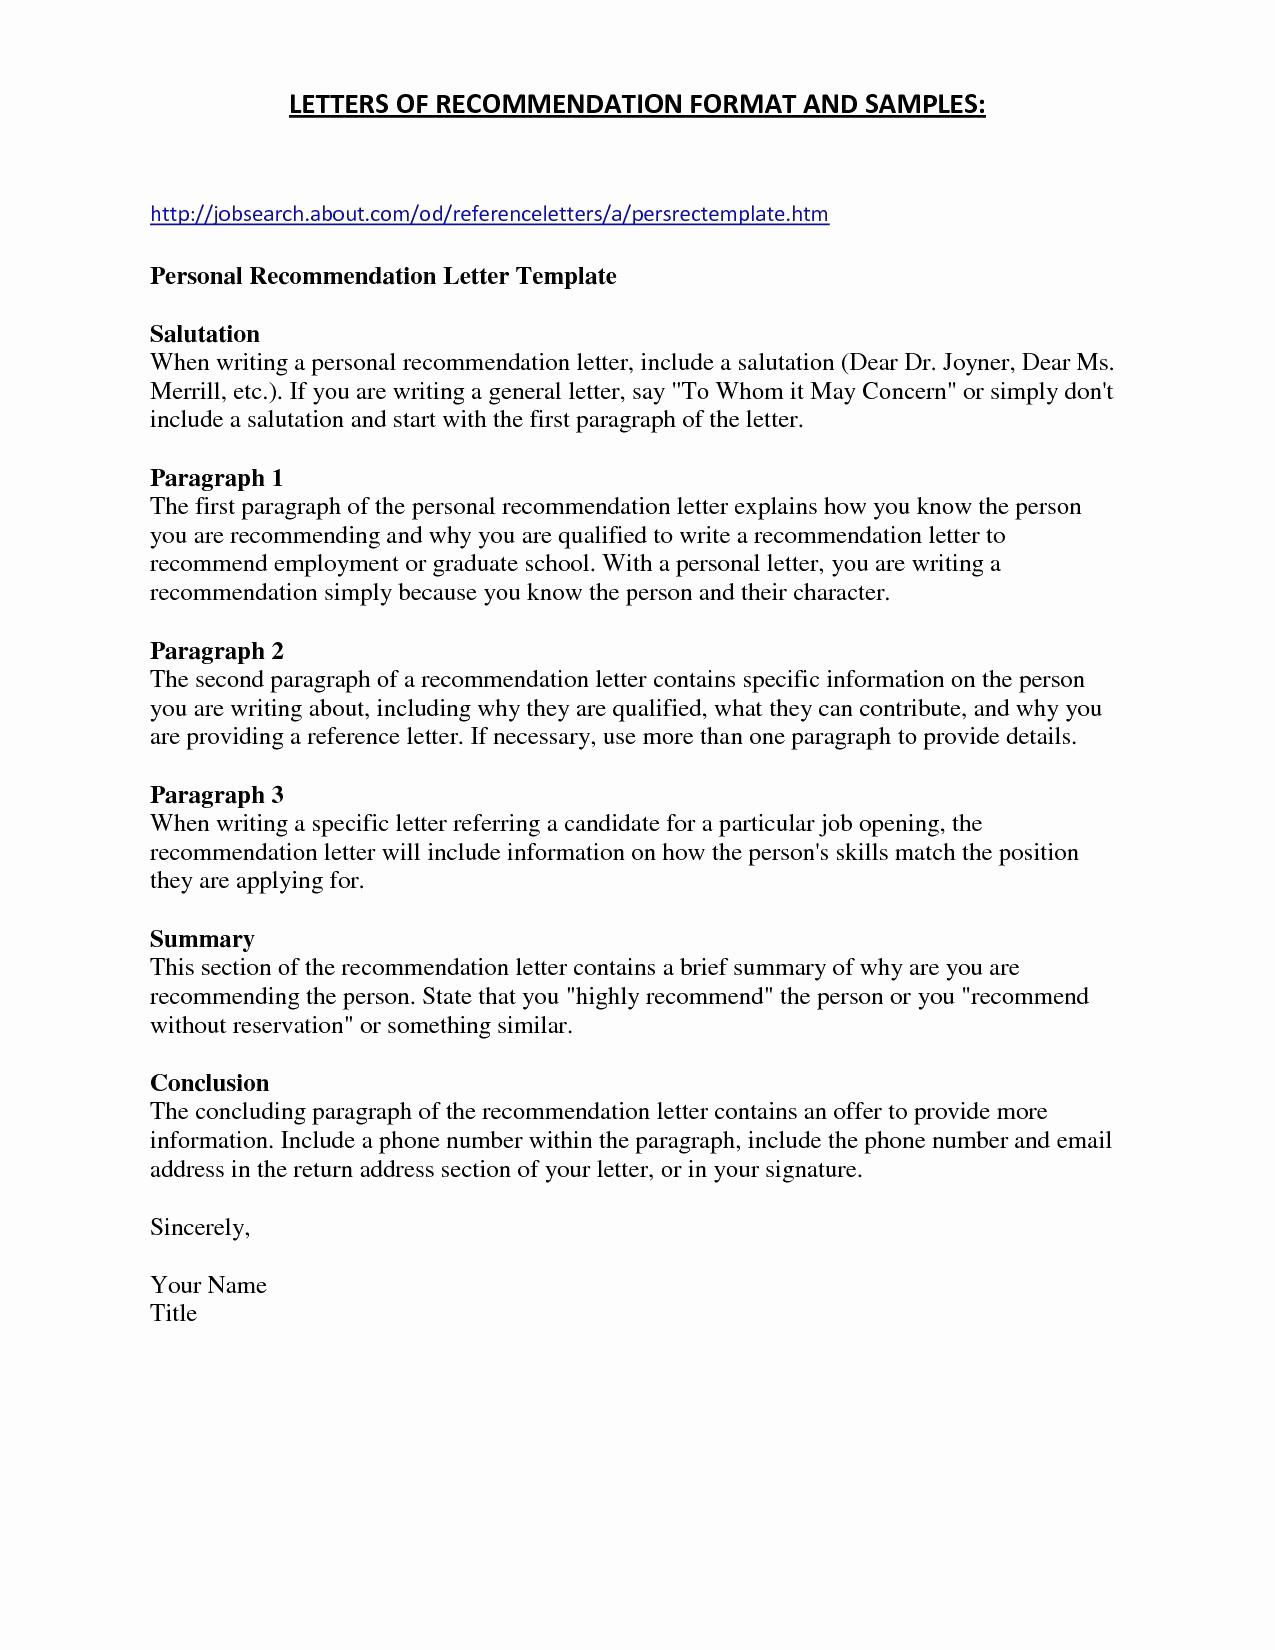 Bookkeeper Job Description for Resume - 45 Luxury Bookkeeper Cover Letter Resume Templates Ideas 2018